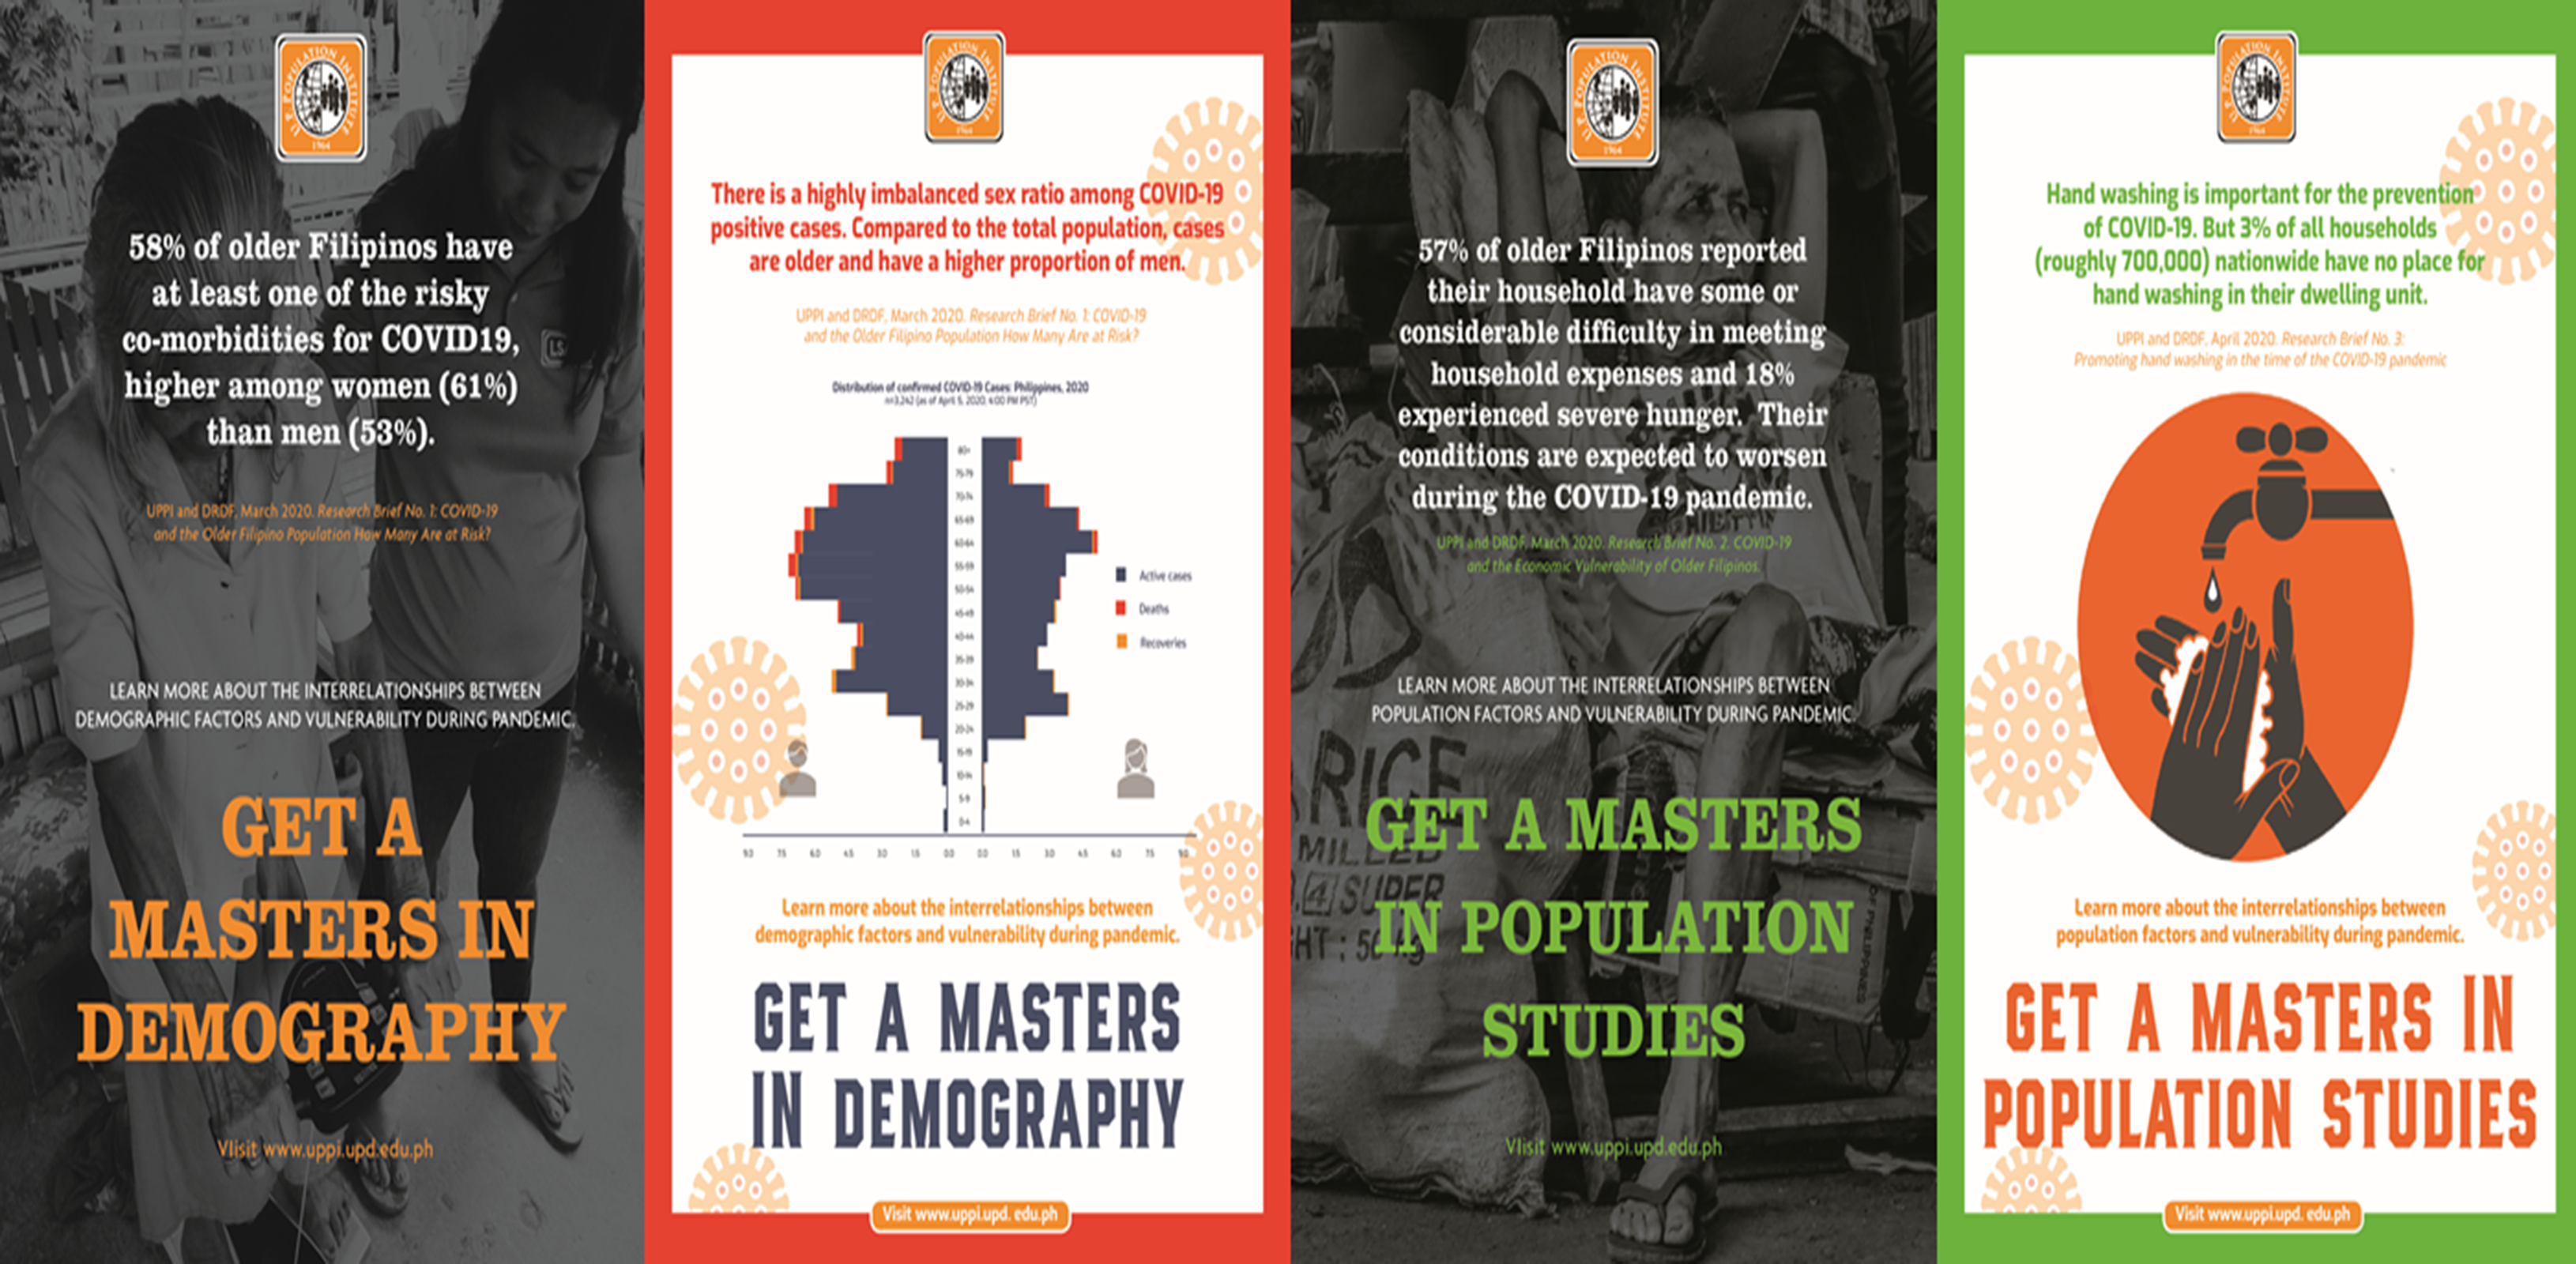 Enrol in our Masters Programs!